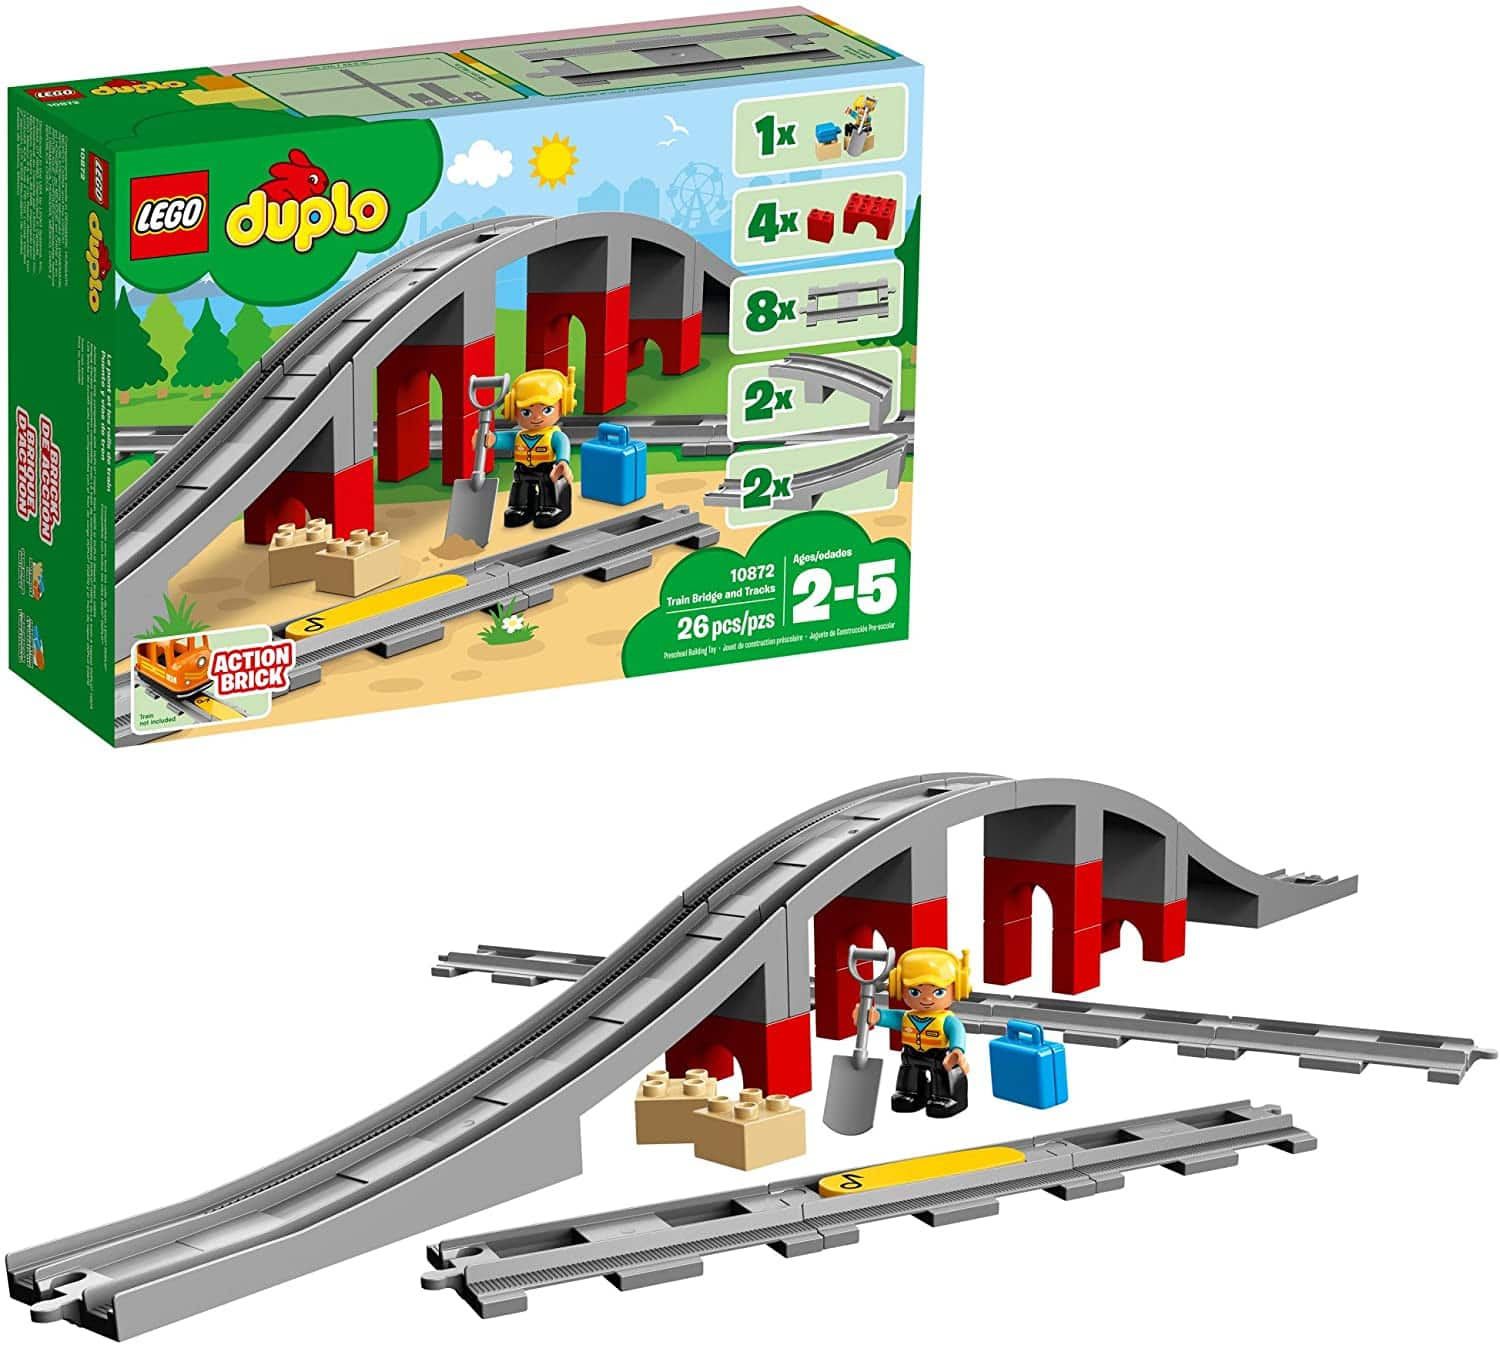 LEGO DUPLO Train Bridge and Tracks 10872 Building Blocks (26 Pieces) - $19.99